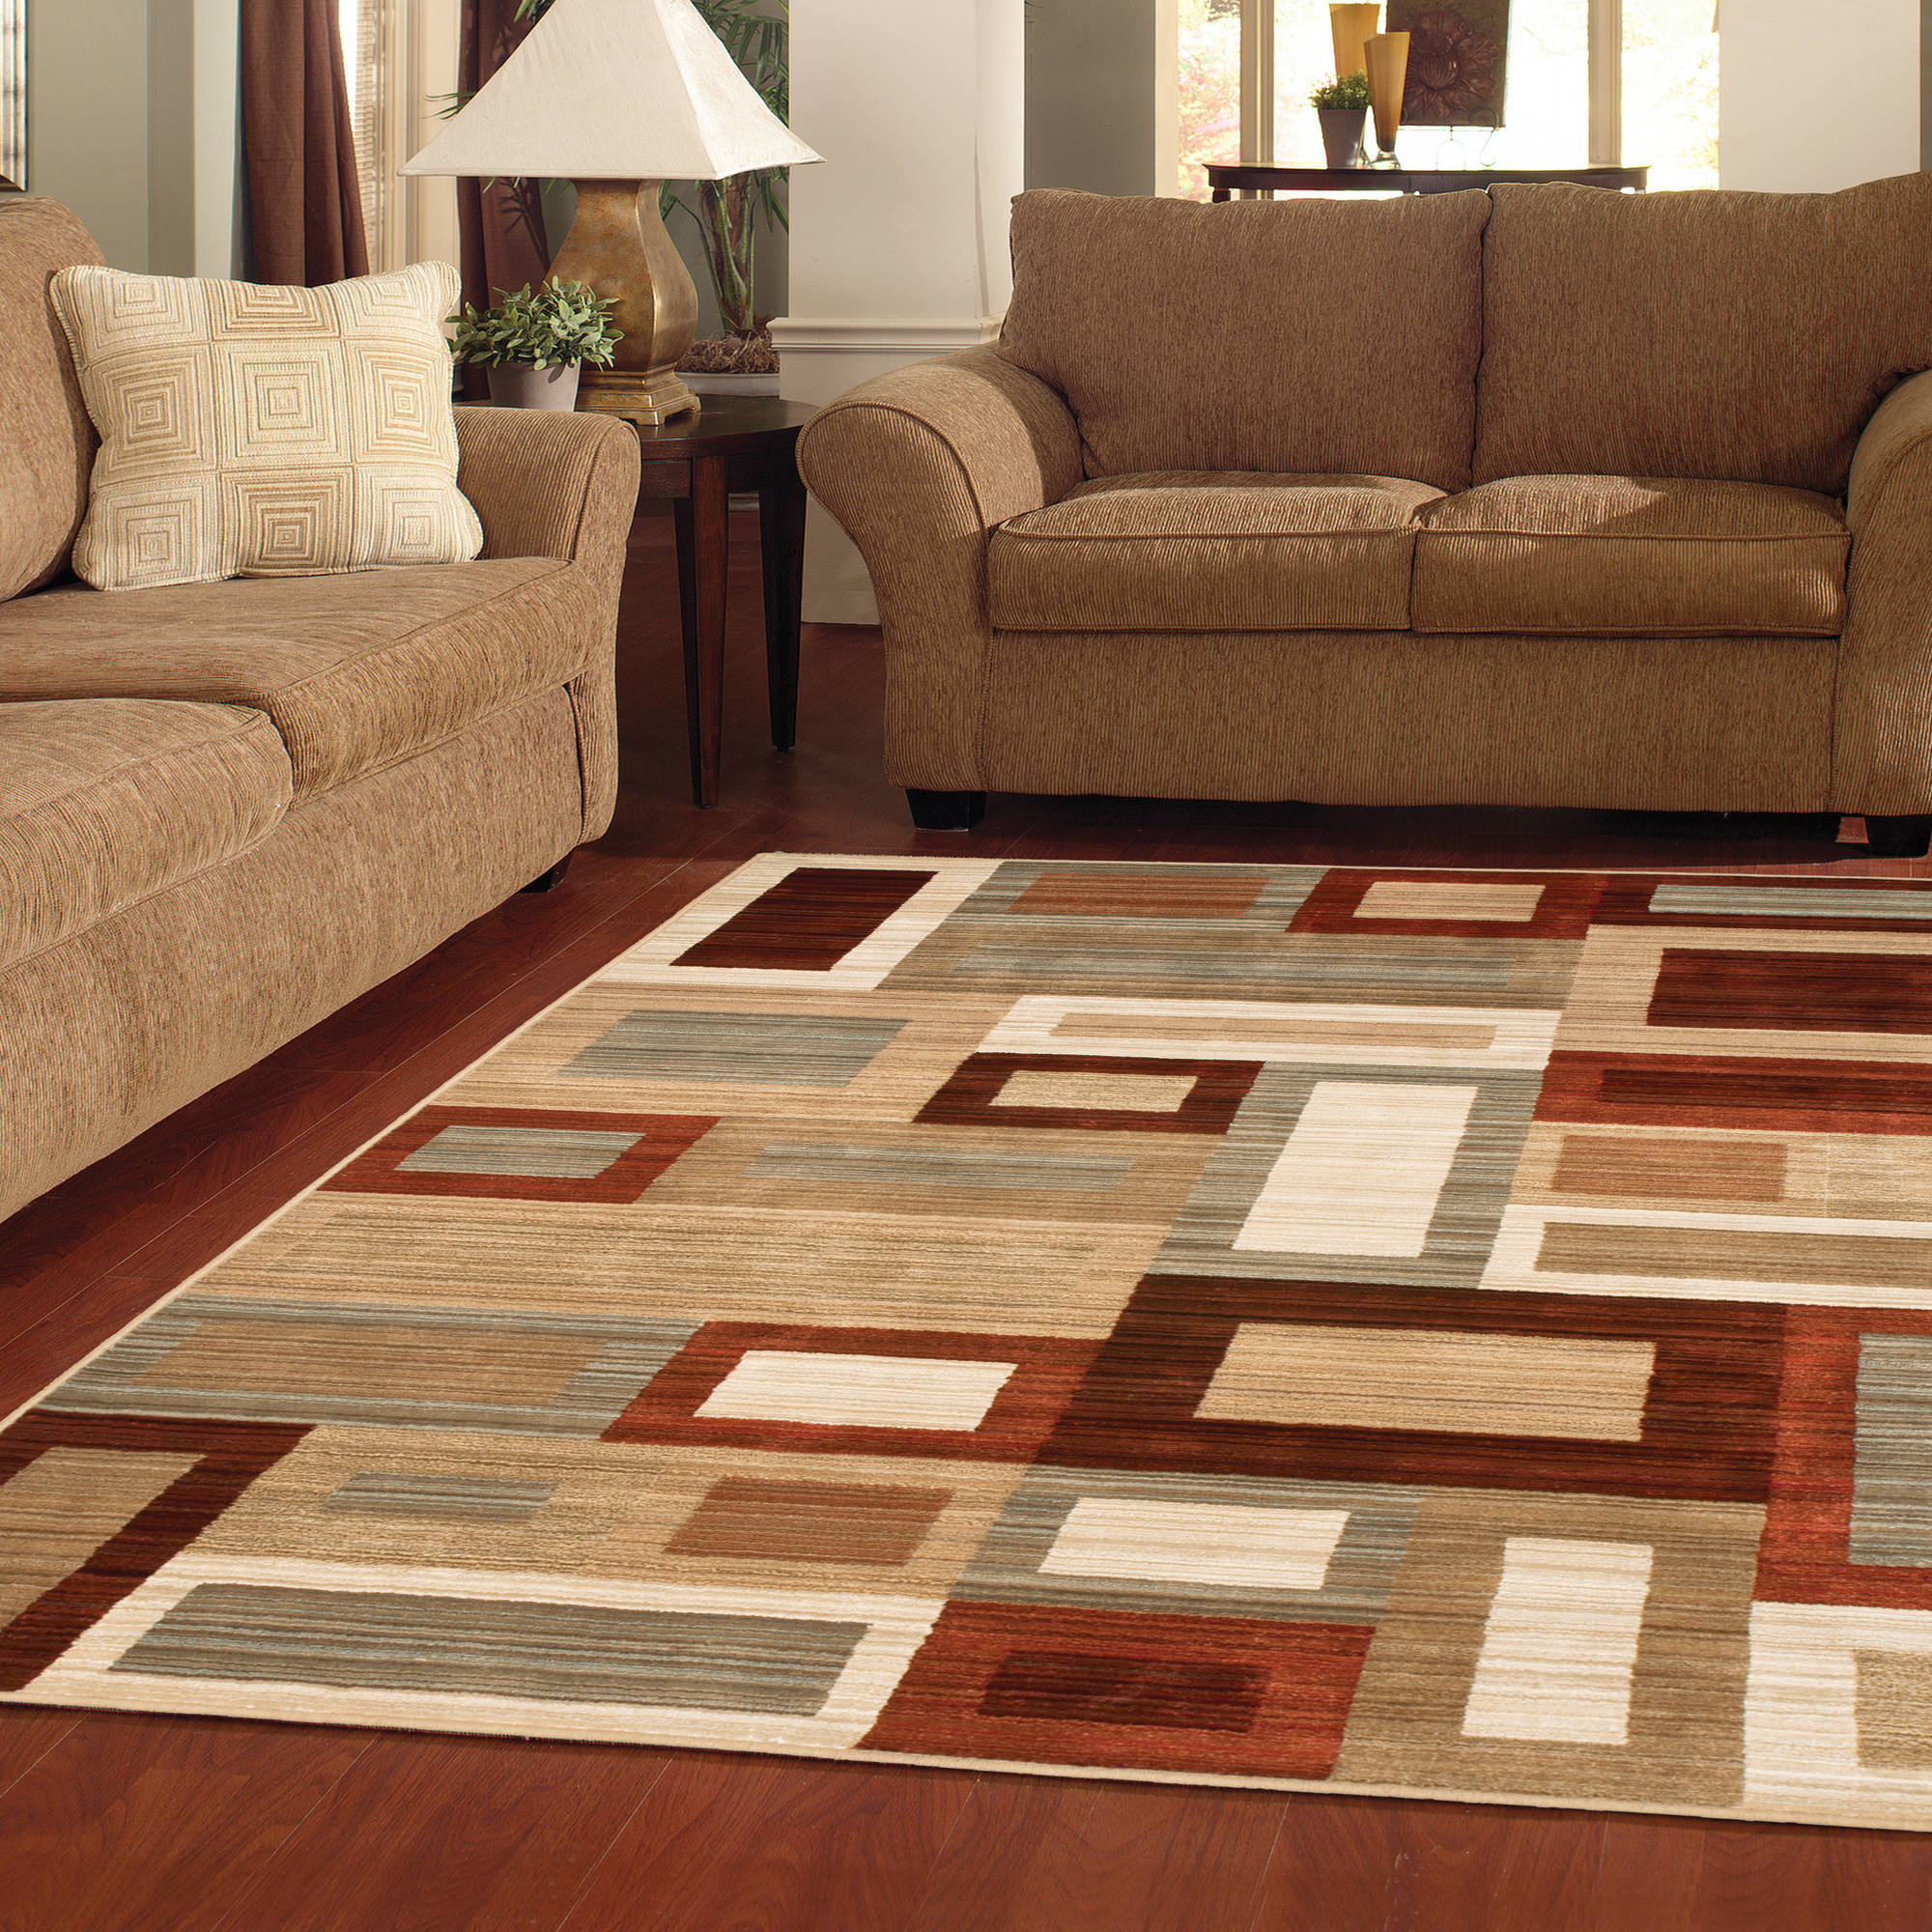 Better Homes and Gardens Franklin Squares Area Rug or Runner by Orian Rugs